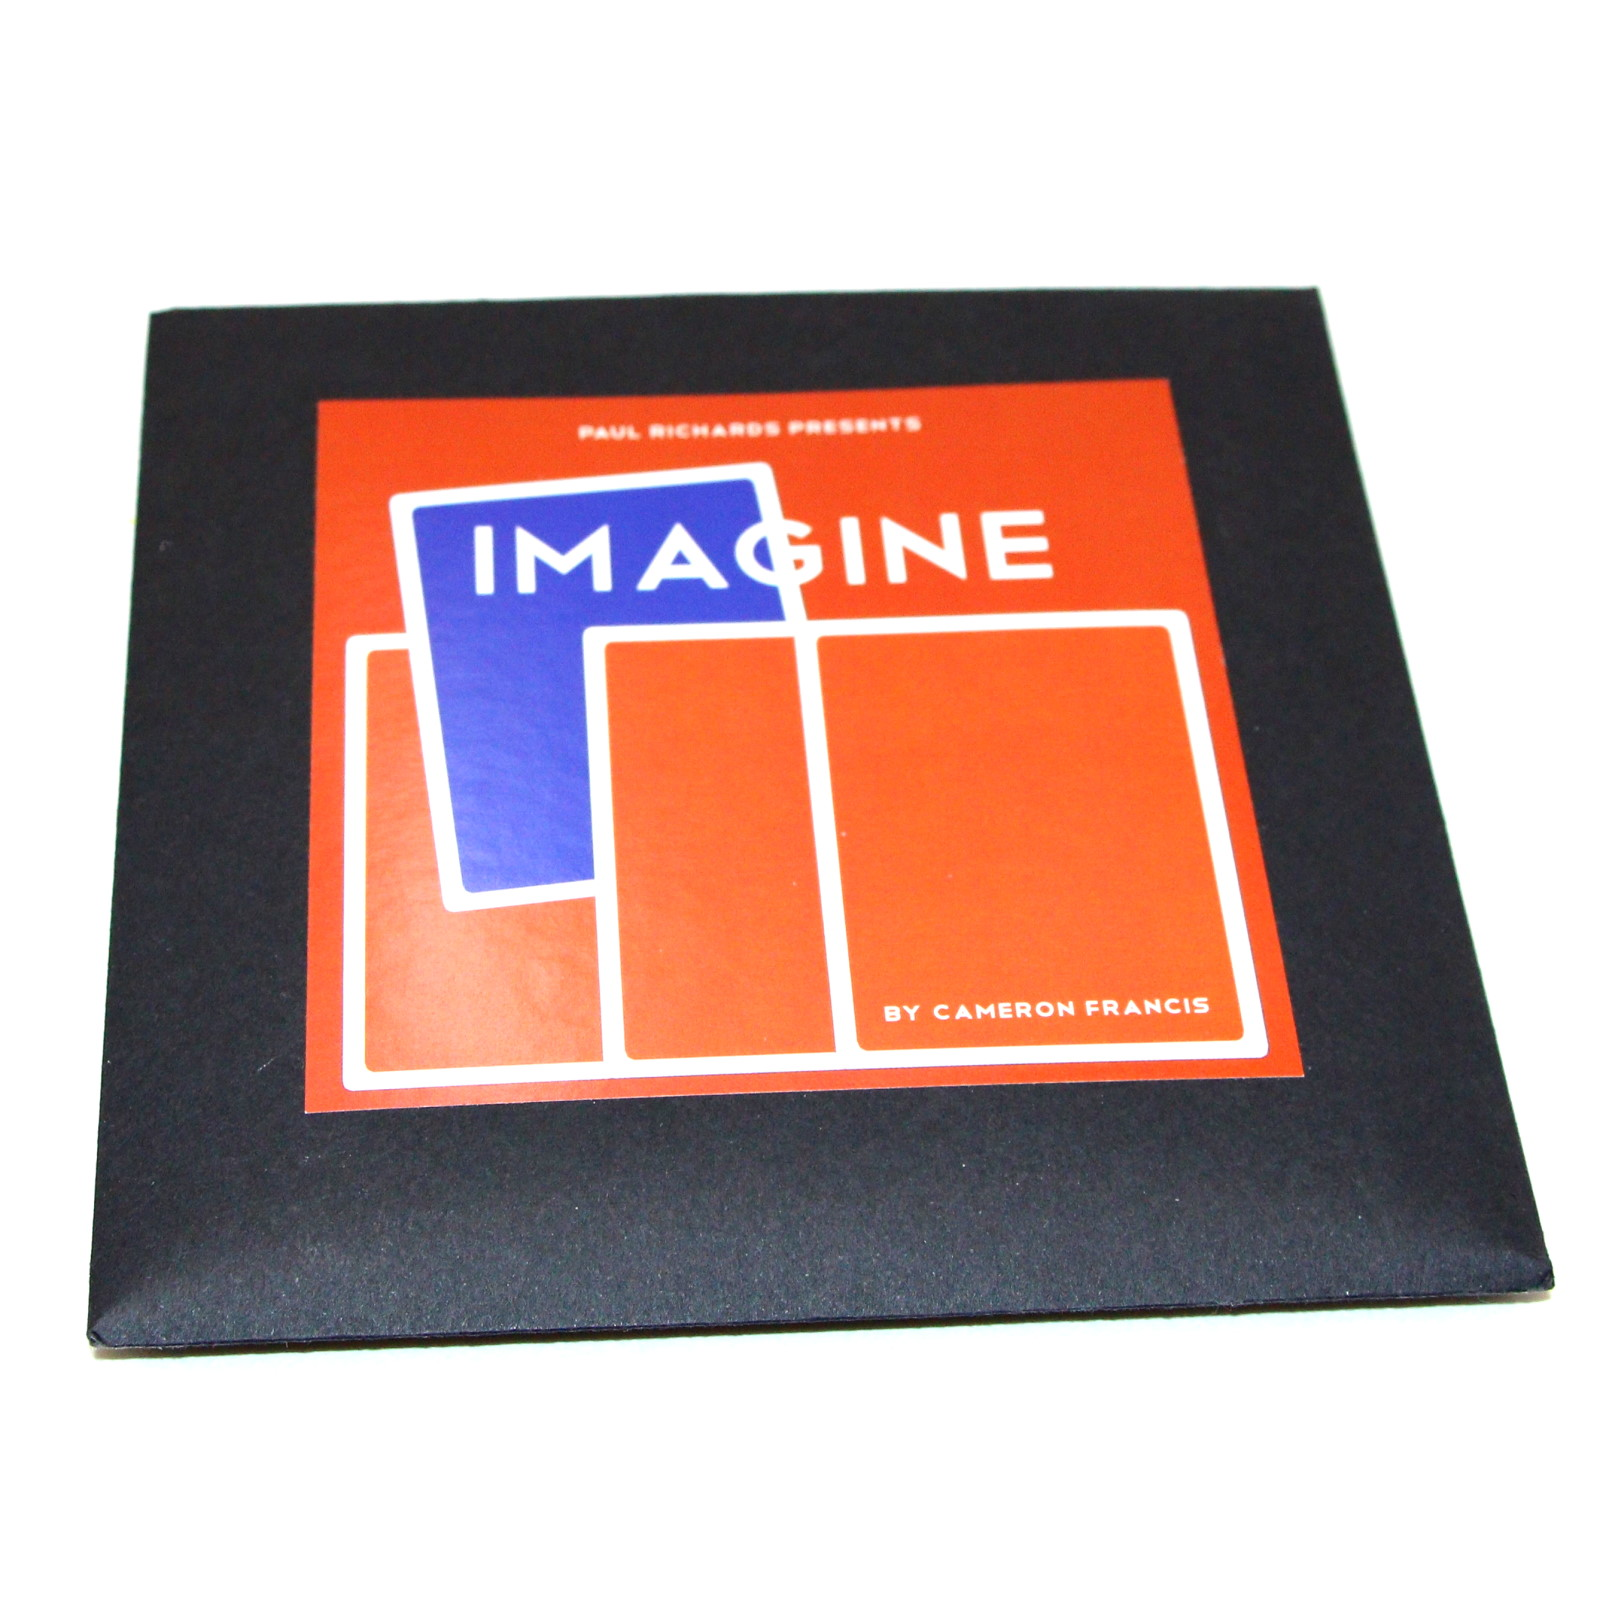 Imagine by Cameron Francis